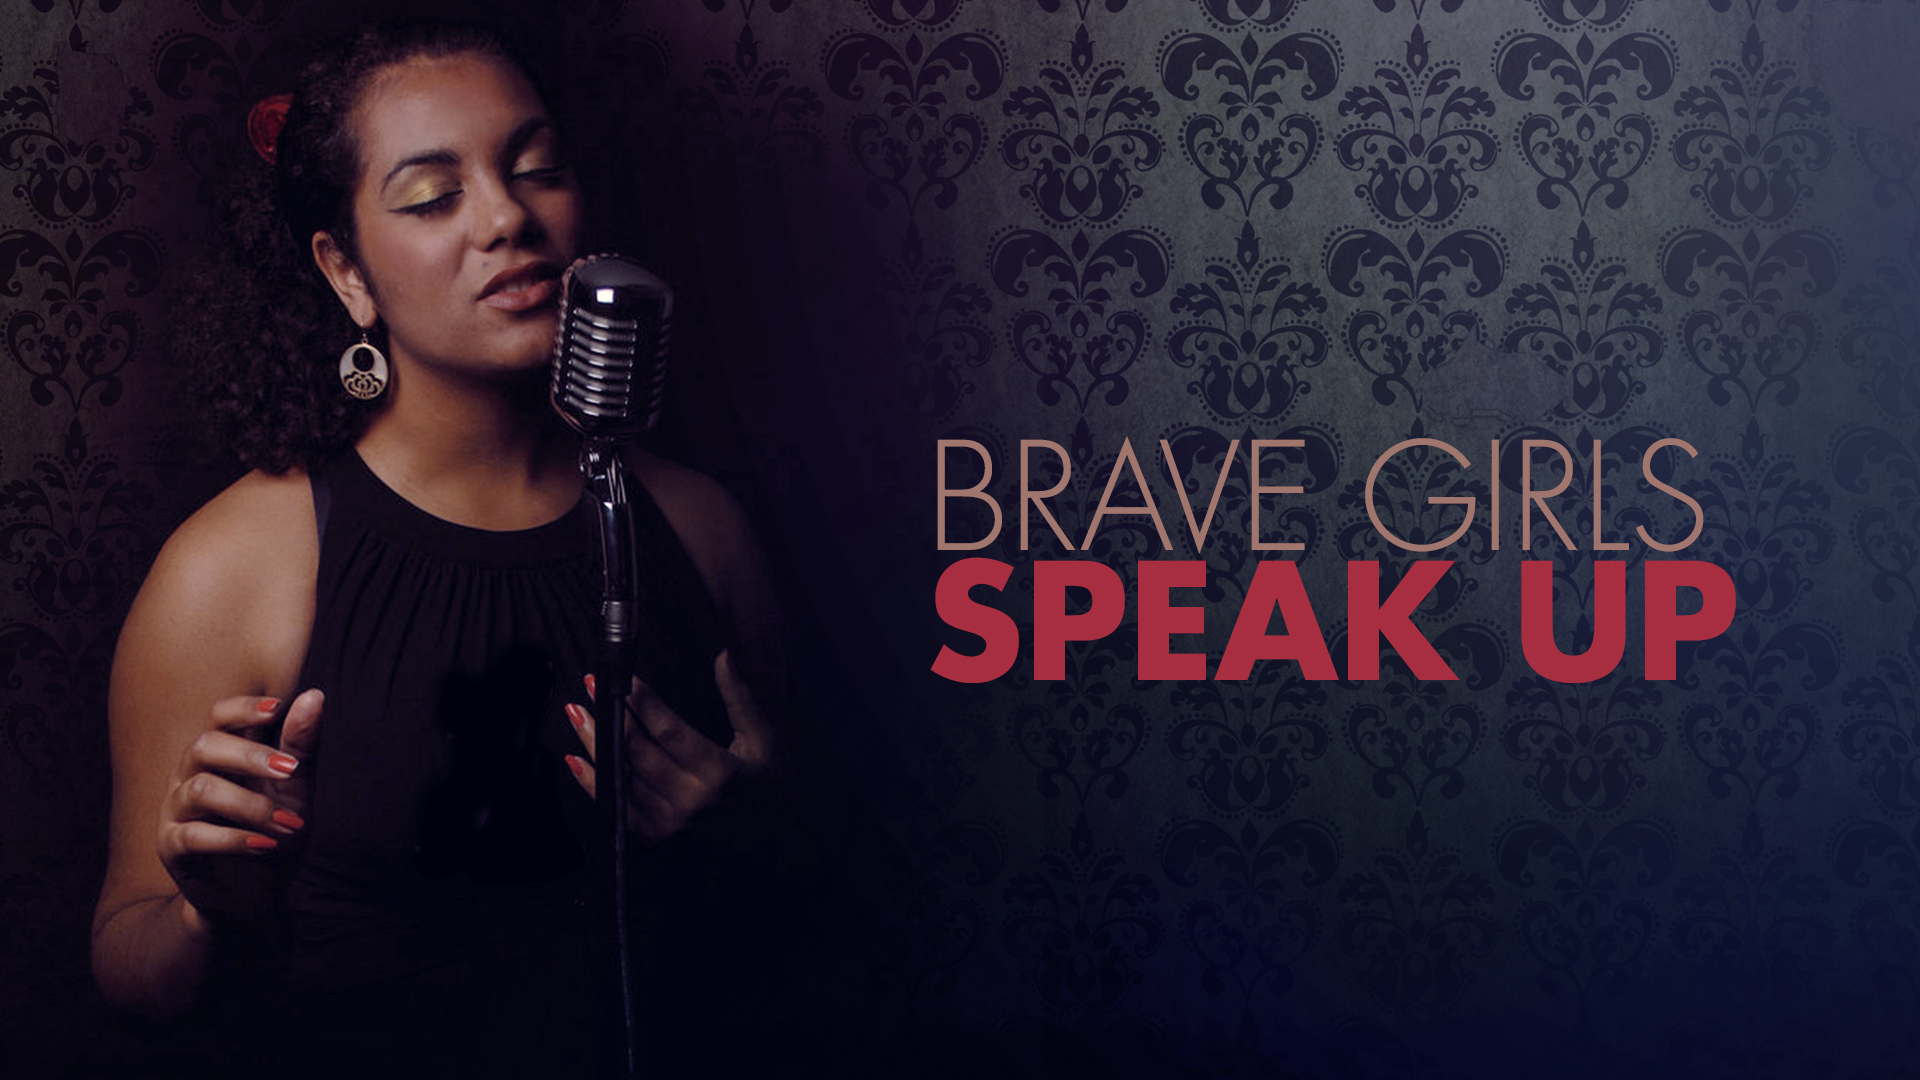 Brave Girls Speak Up